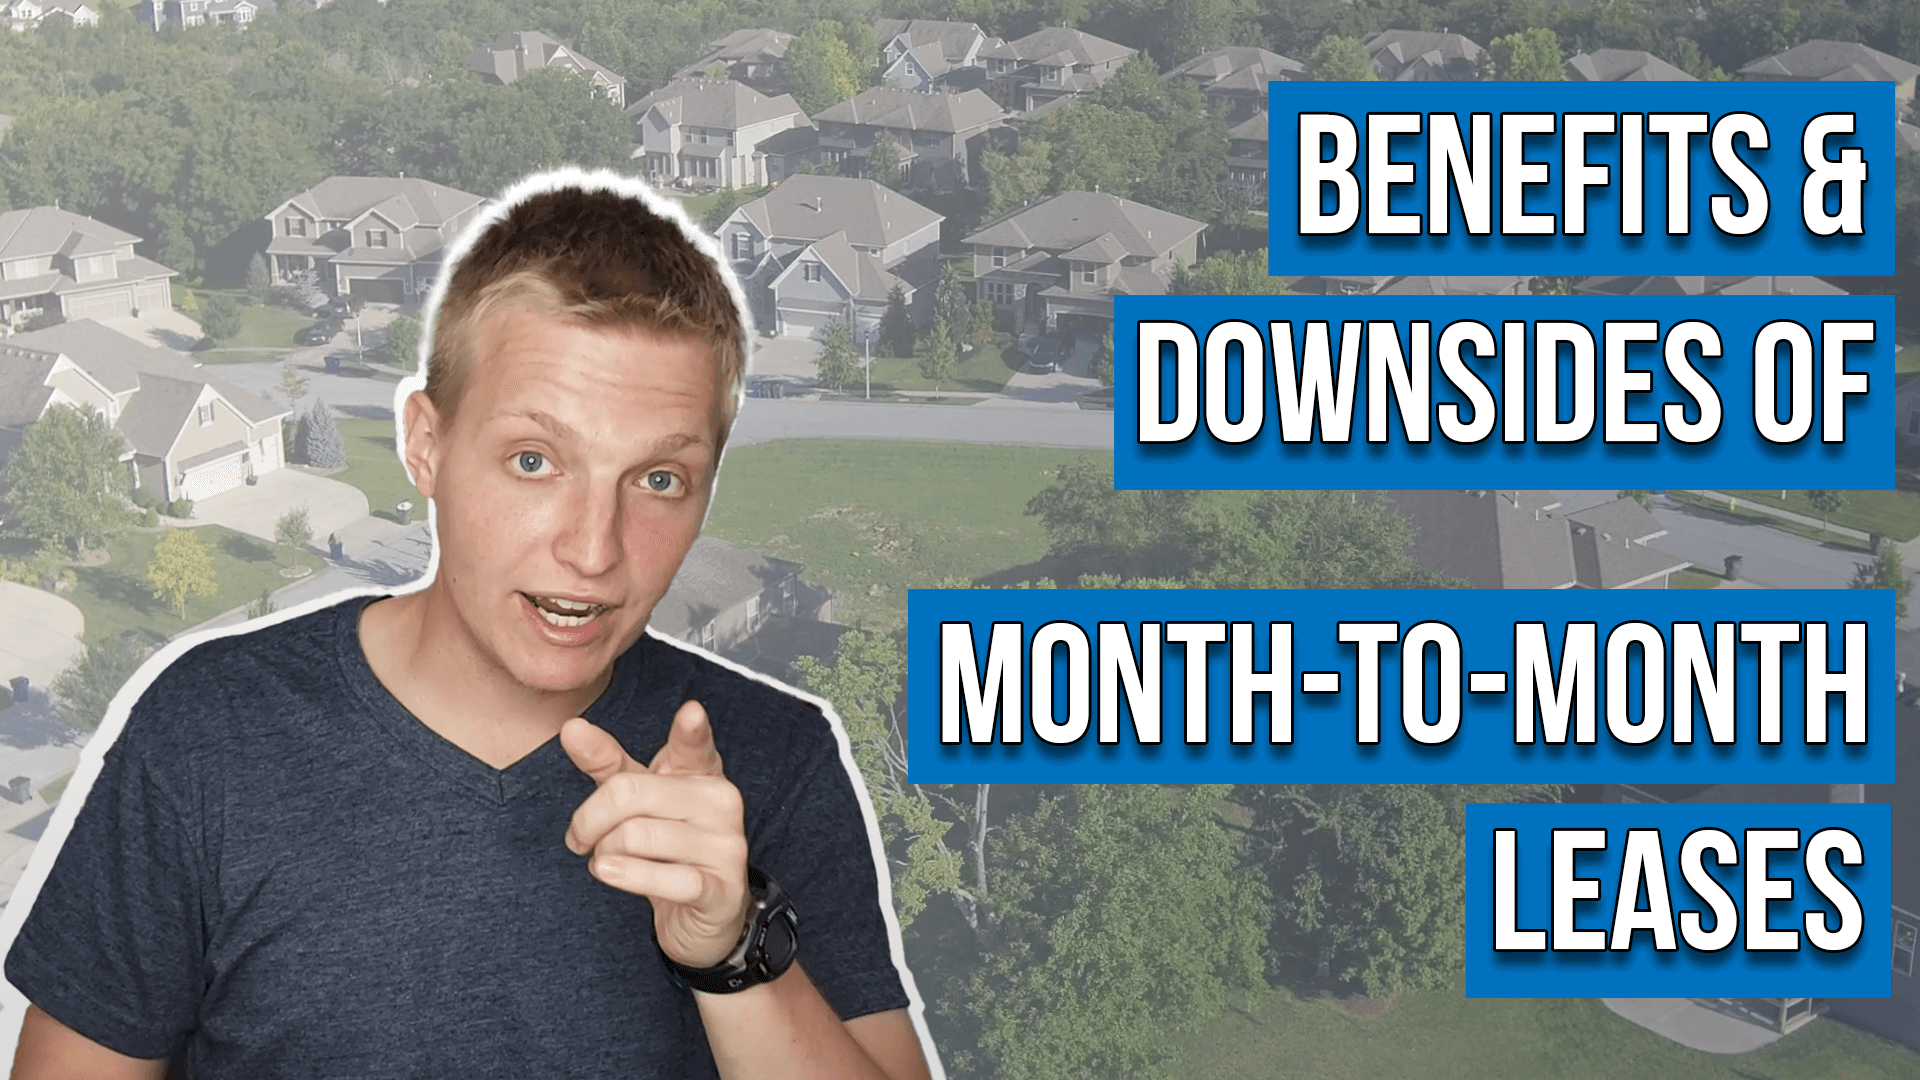 text reads: benefits of month-to-month leases (and downsides)